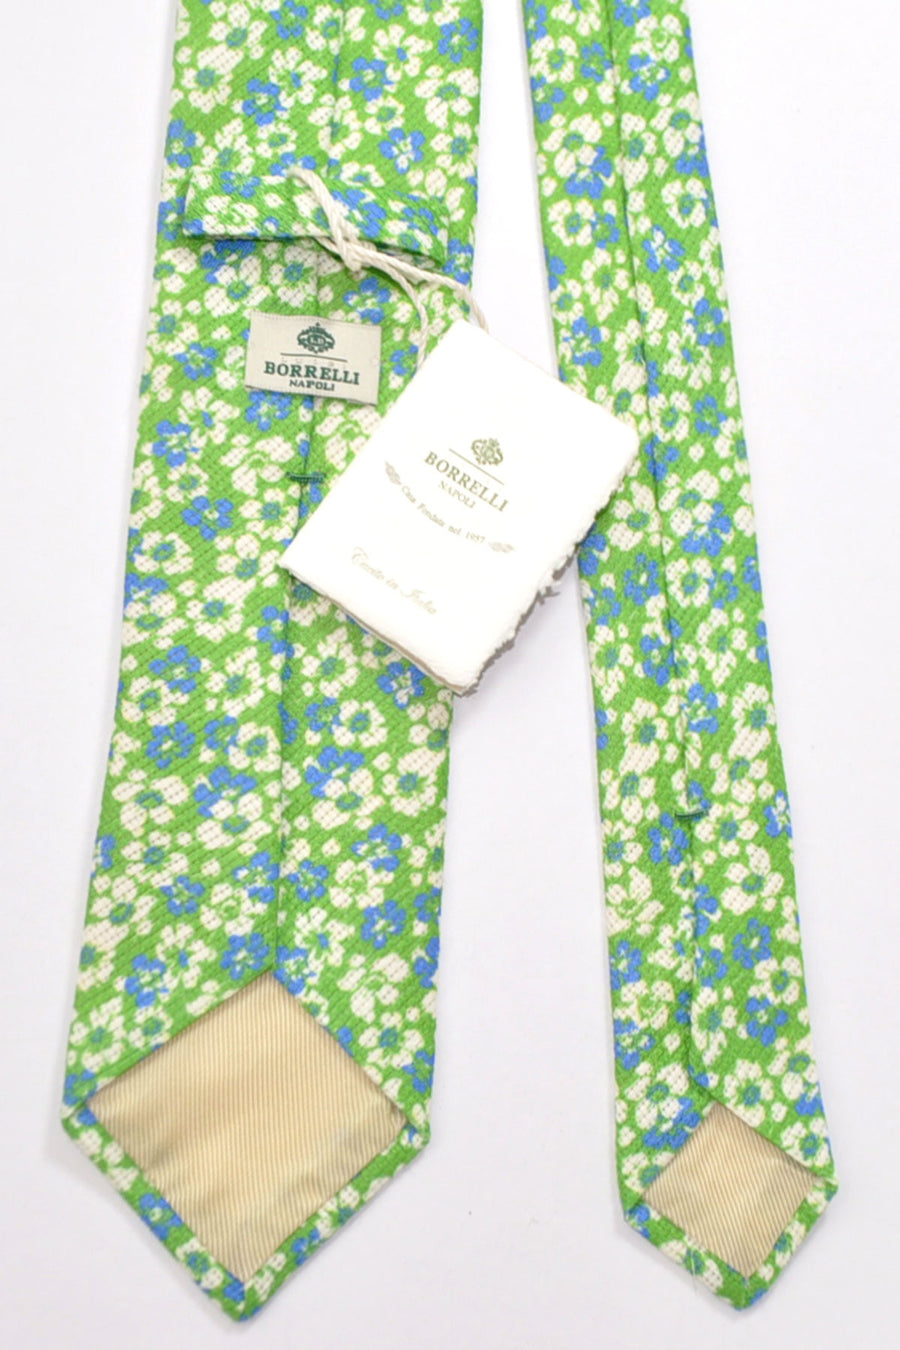 Borrelli Tie Lime Navy White Floral Linen Cotton SALE